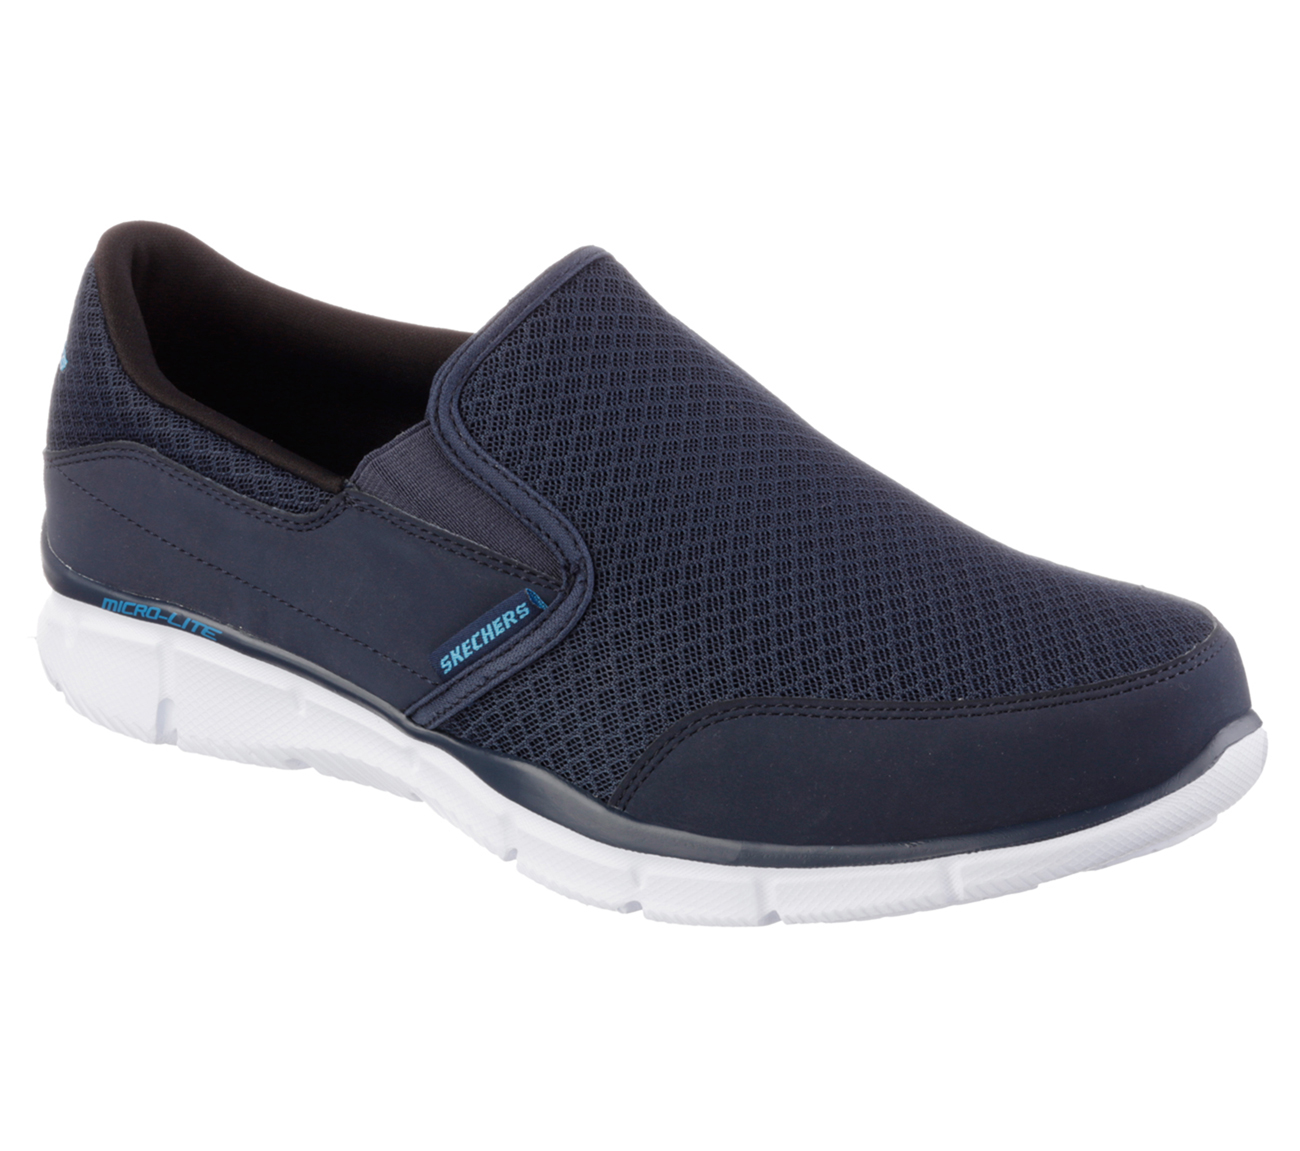 Skechers Equalizer Persistent Shoes Men